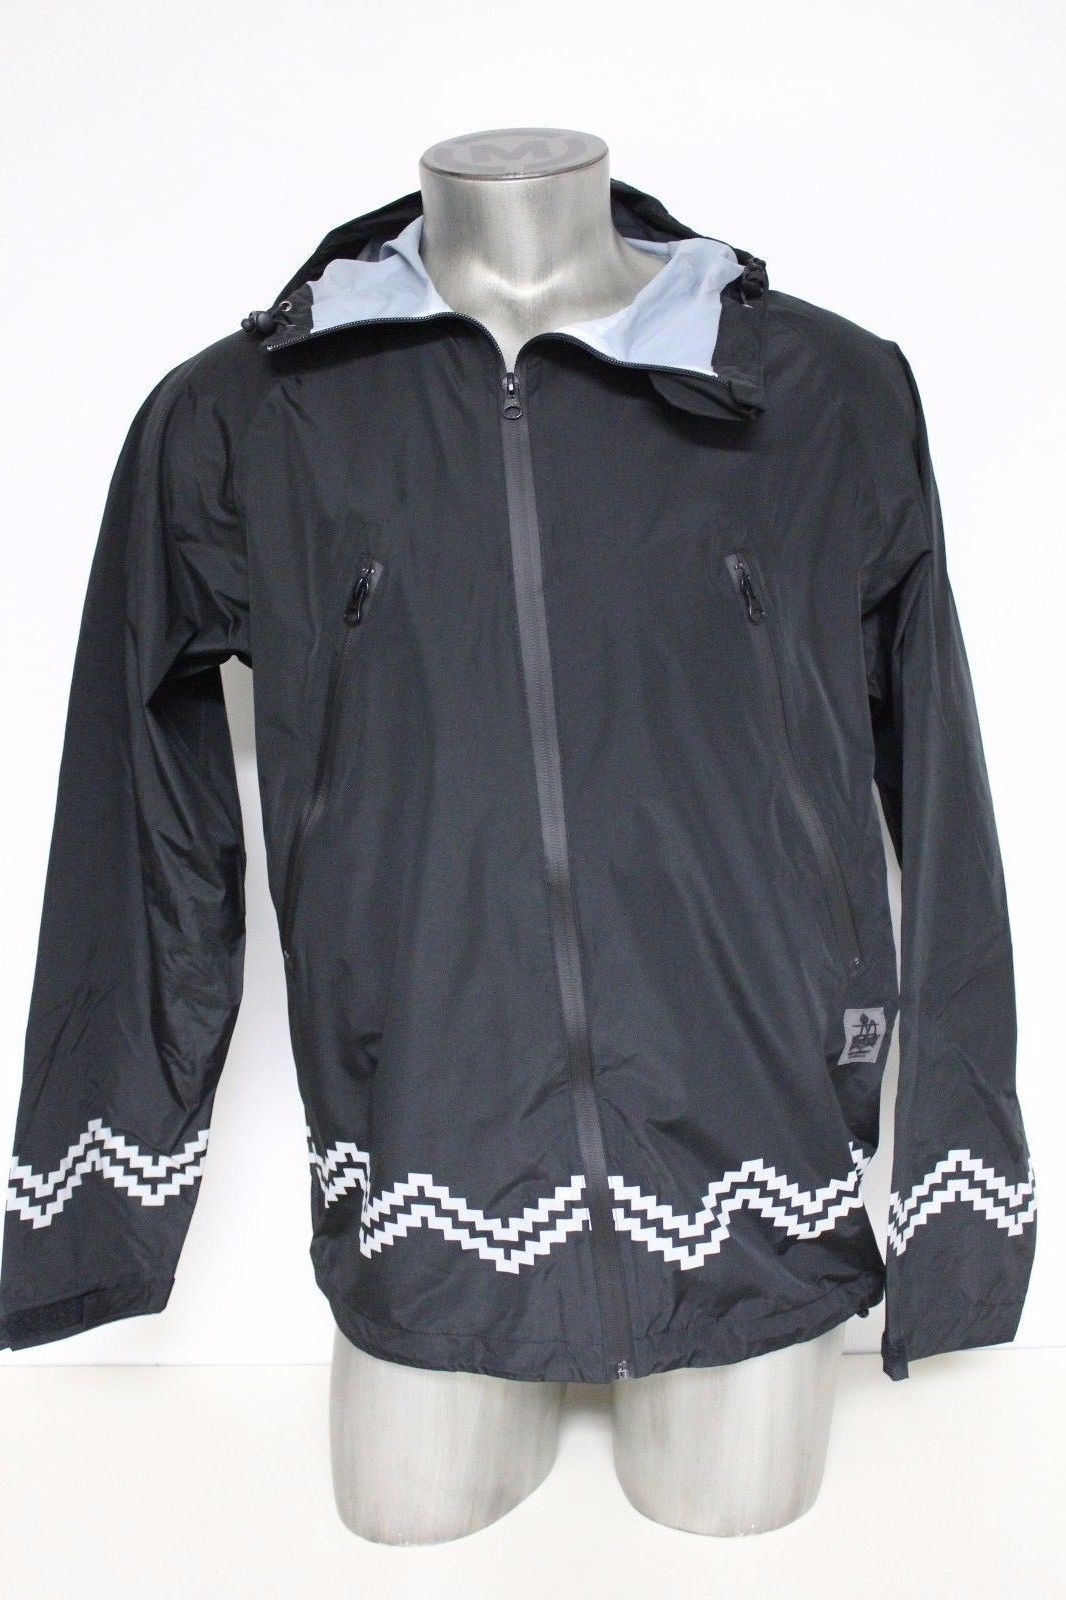 New Crooks & Castles Men's Woven Jacket Polyester Port Authority Black Size XL image 3